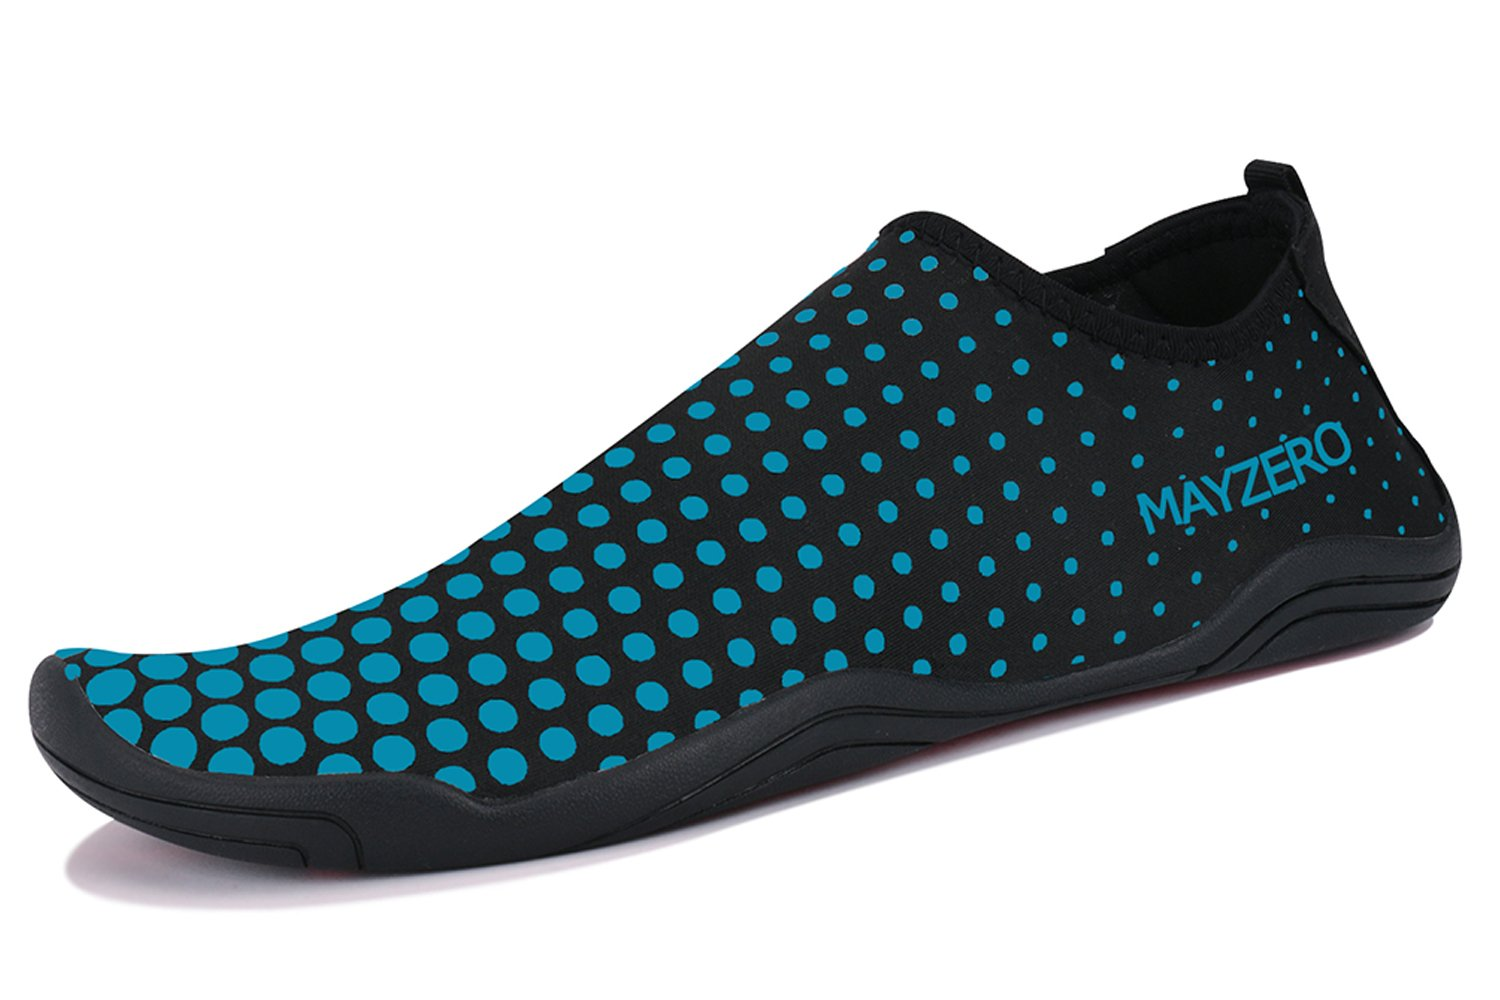 WXDZ Men Women Water Sports Shoes Quick Dry Barefoot Aqua Socks Swim Shoes for Pool Beach Walking Running (10.5 US Women/9 US Men, Dot-Blue) by WXDZ (Image #1)